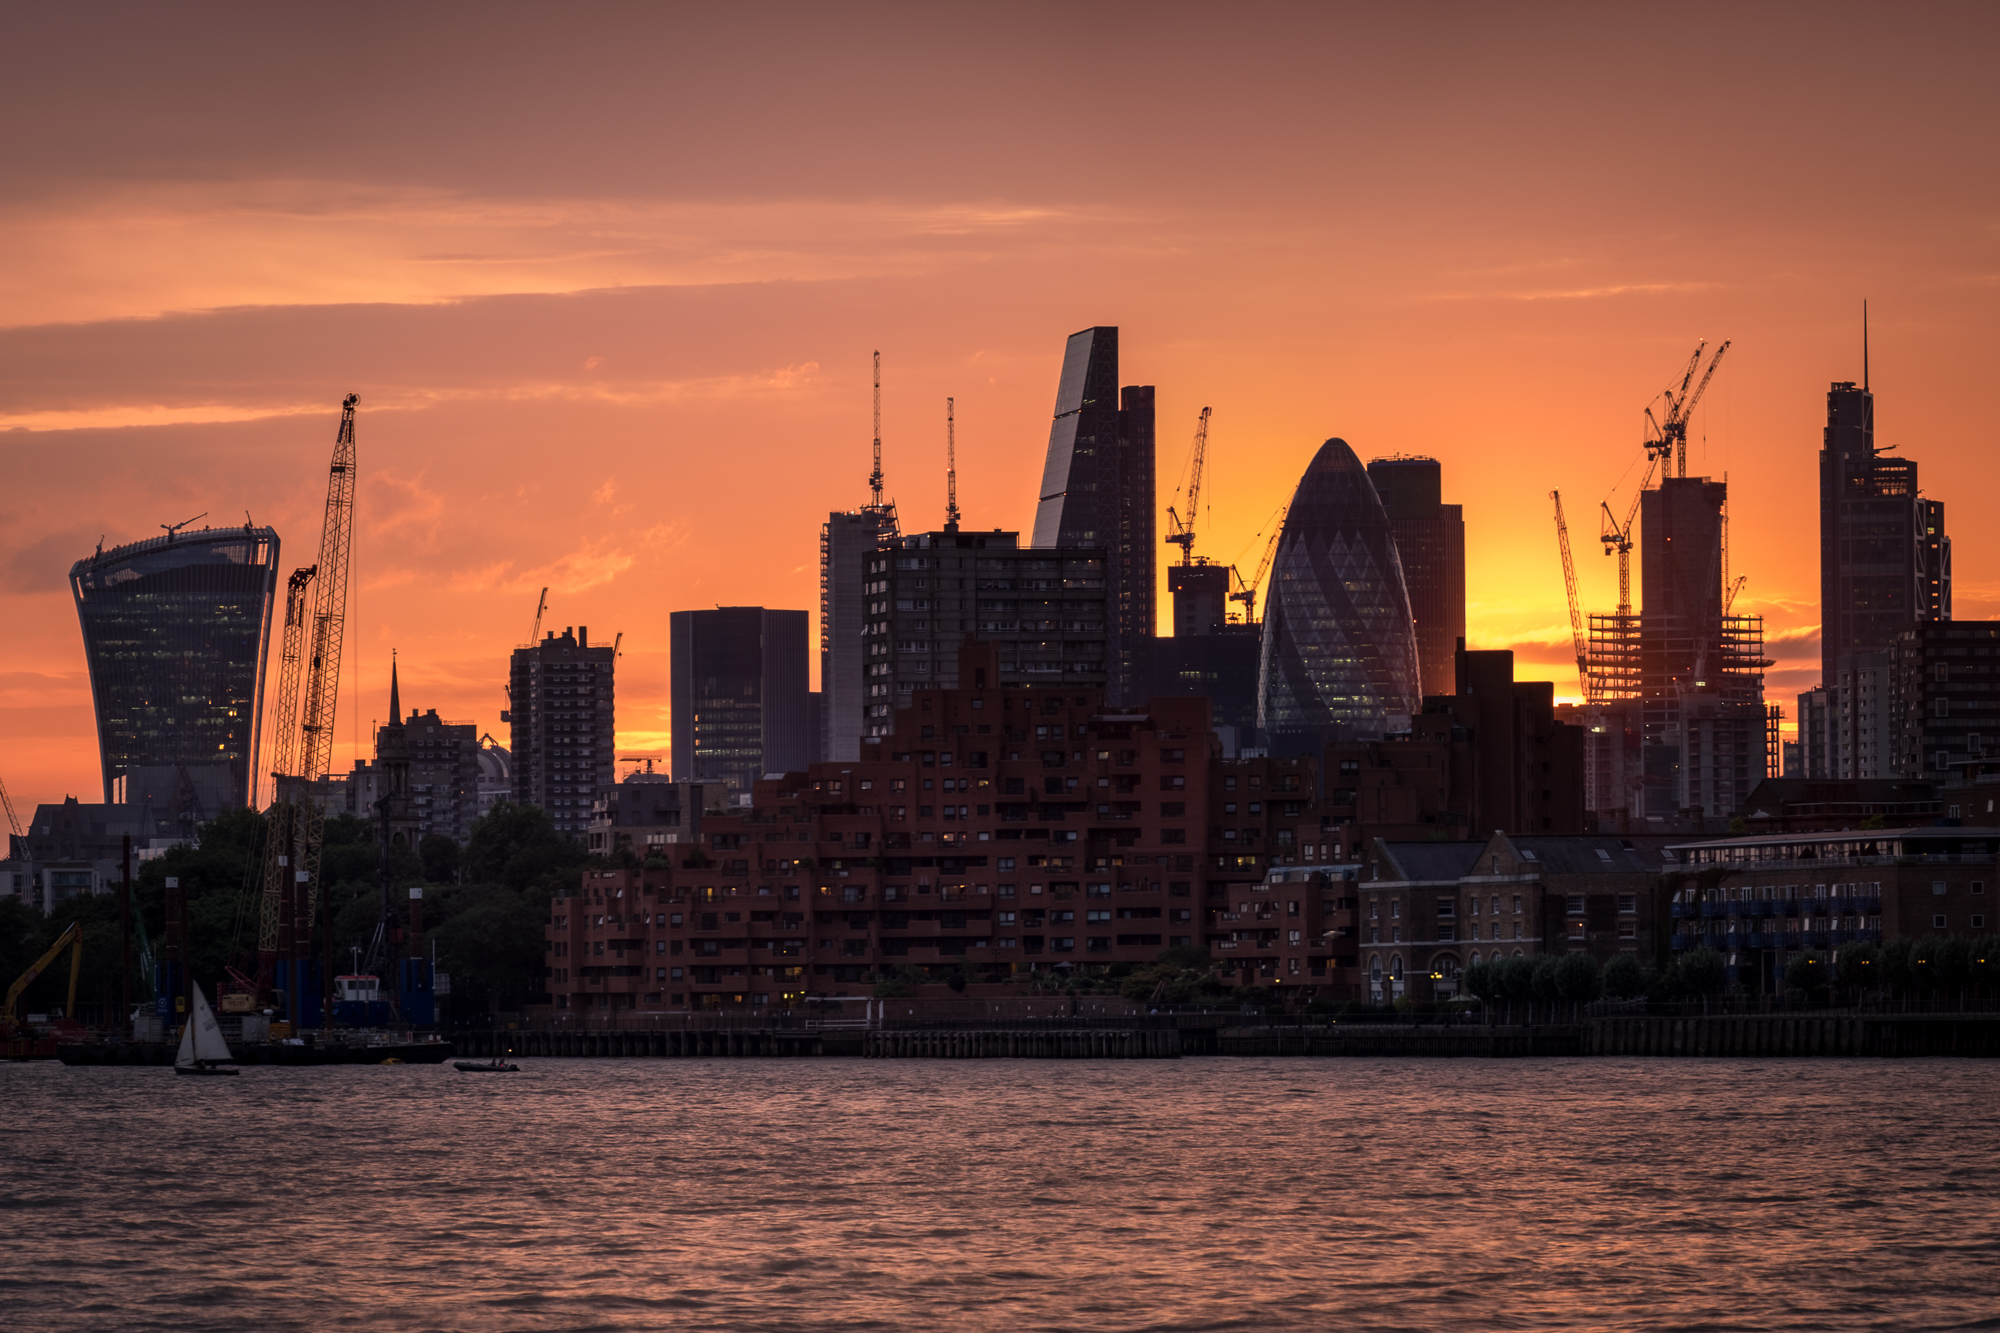 Photo of the city of London at sunset taken by Trevor Sherwin